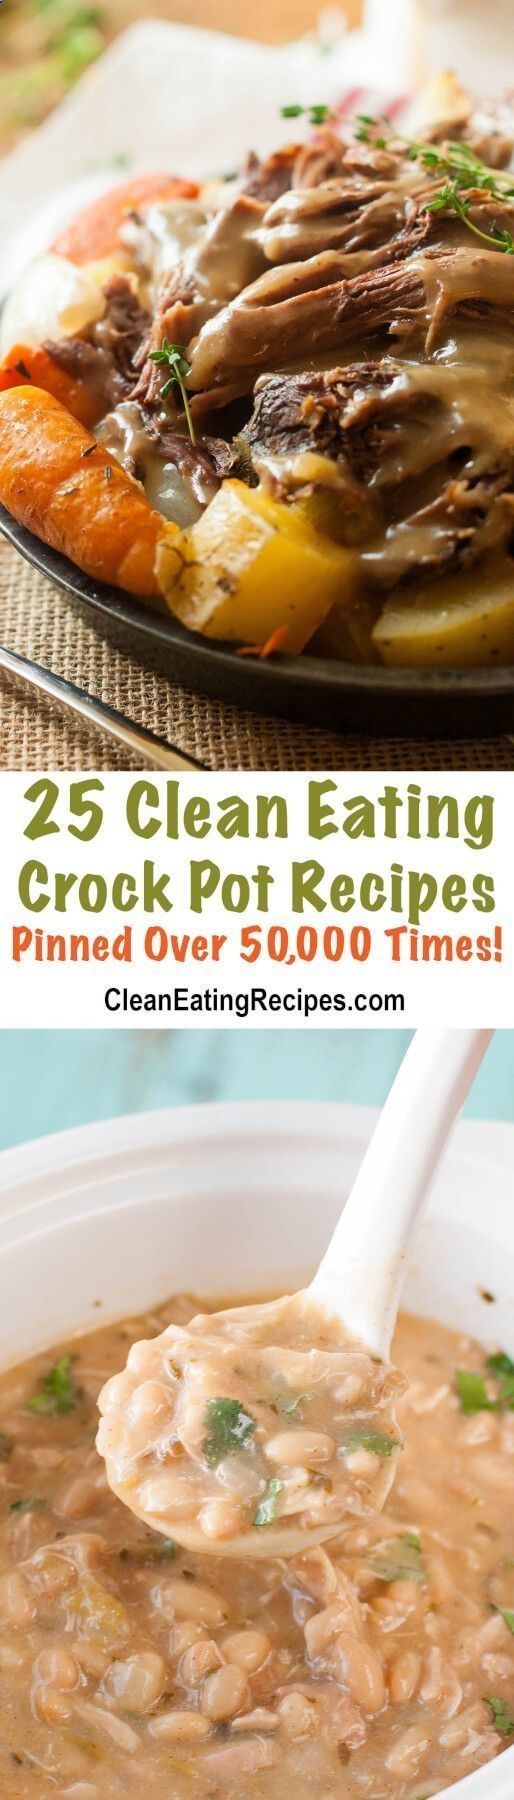 44 best Slow Cookers - Crock Pot - Useful Kitchen Gadgets images on ...